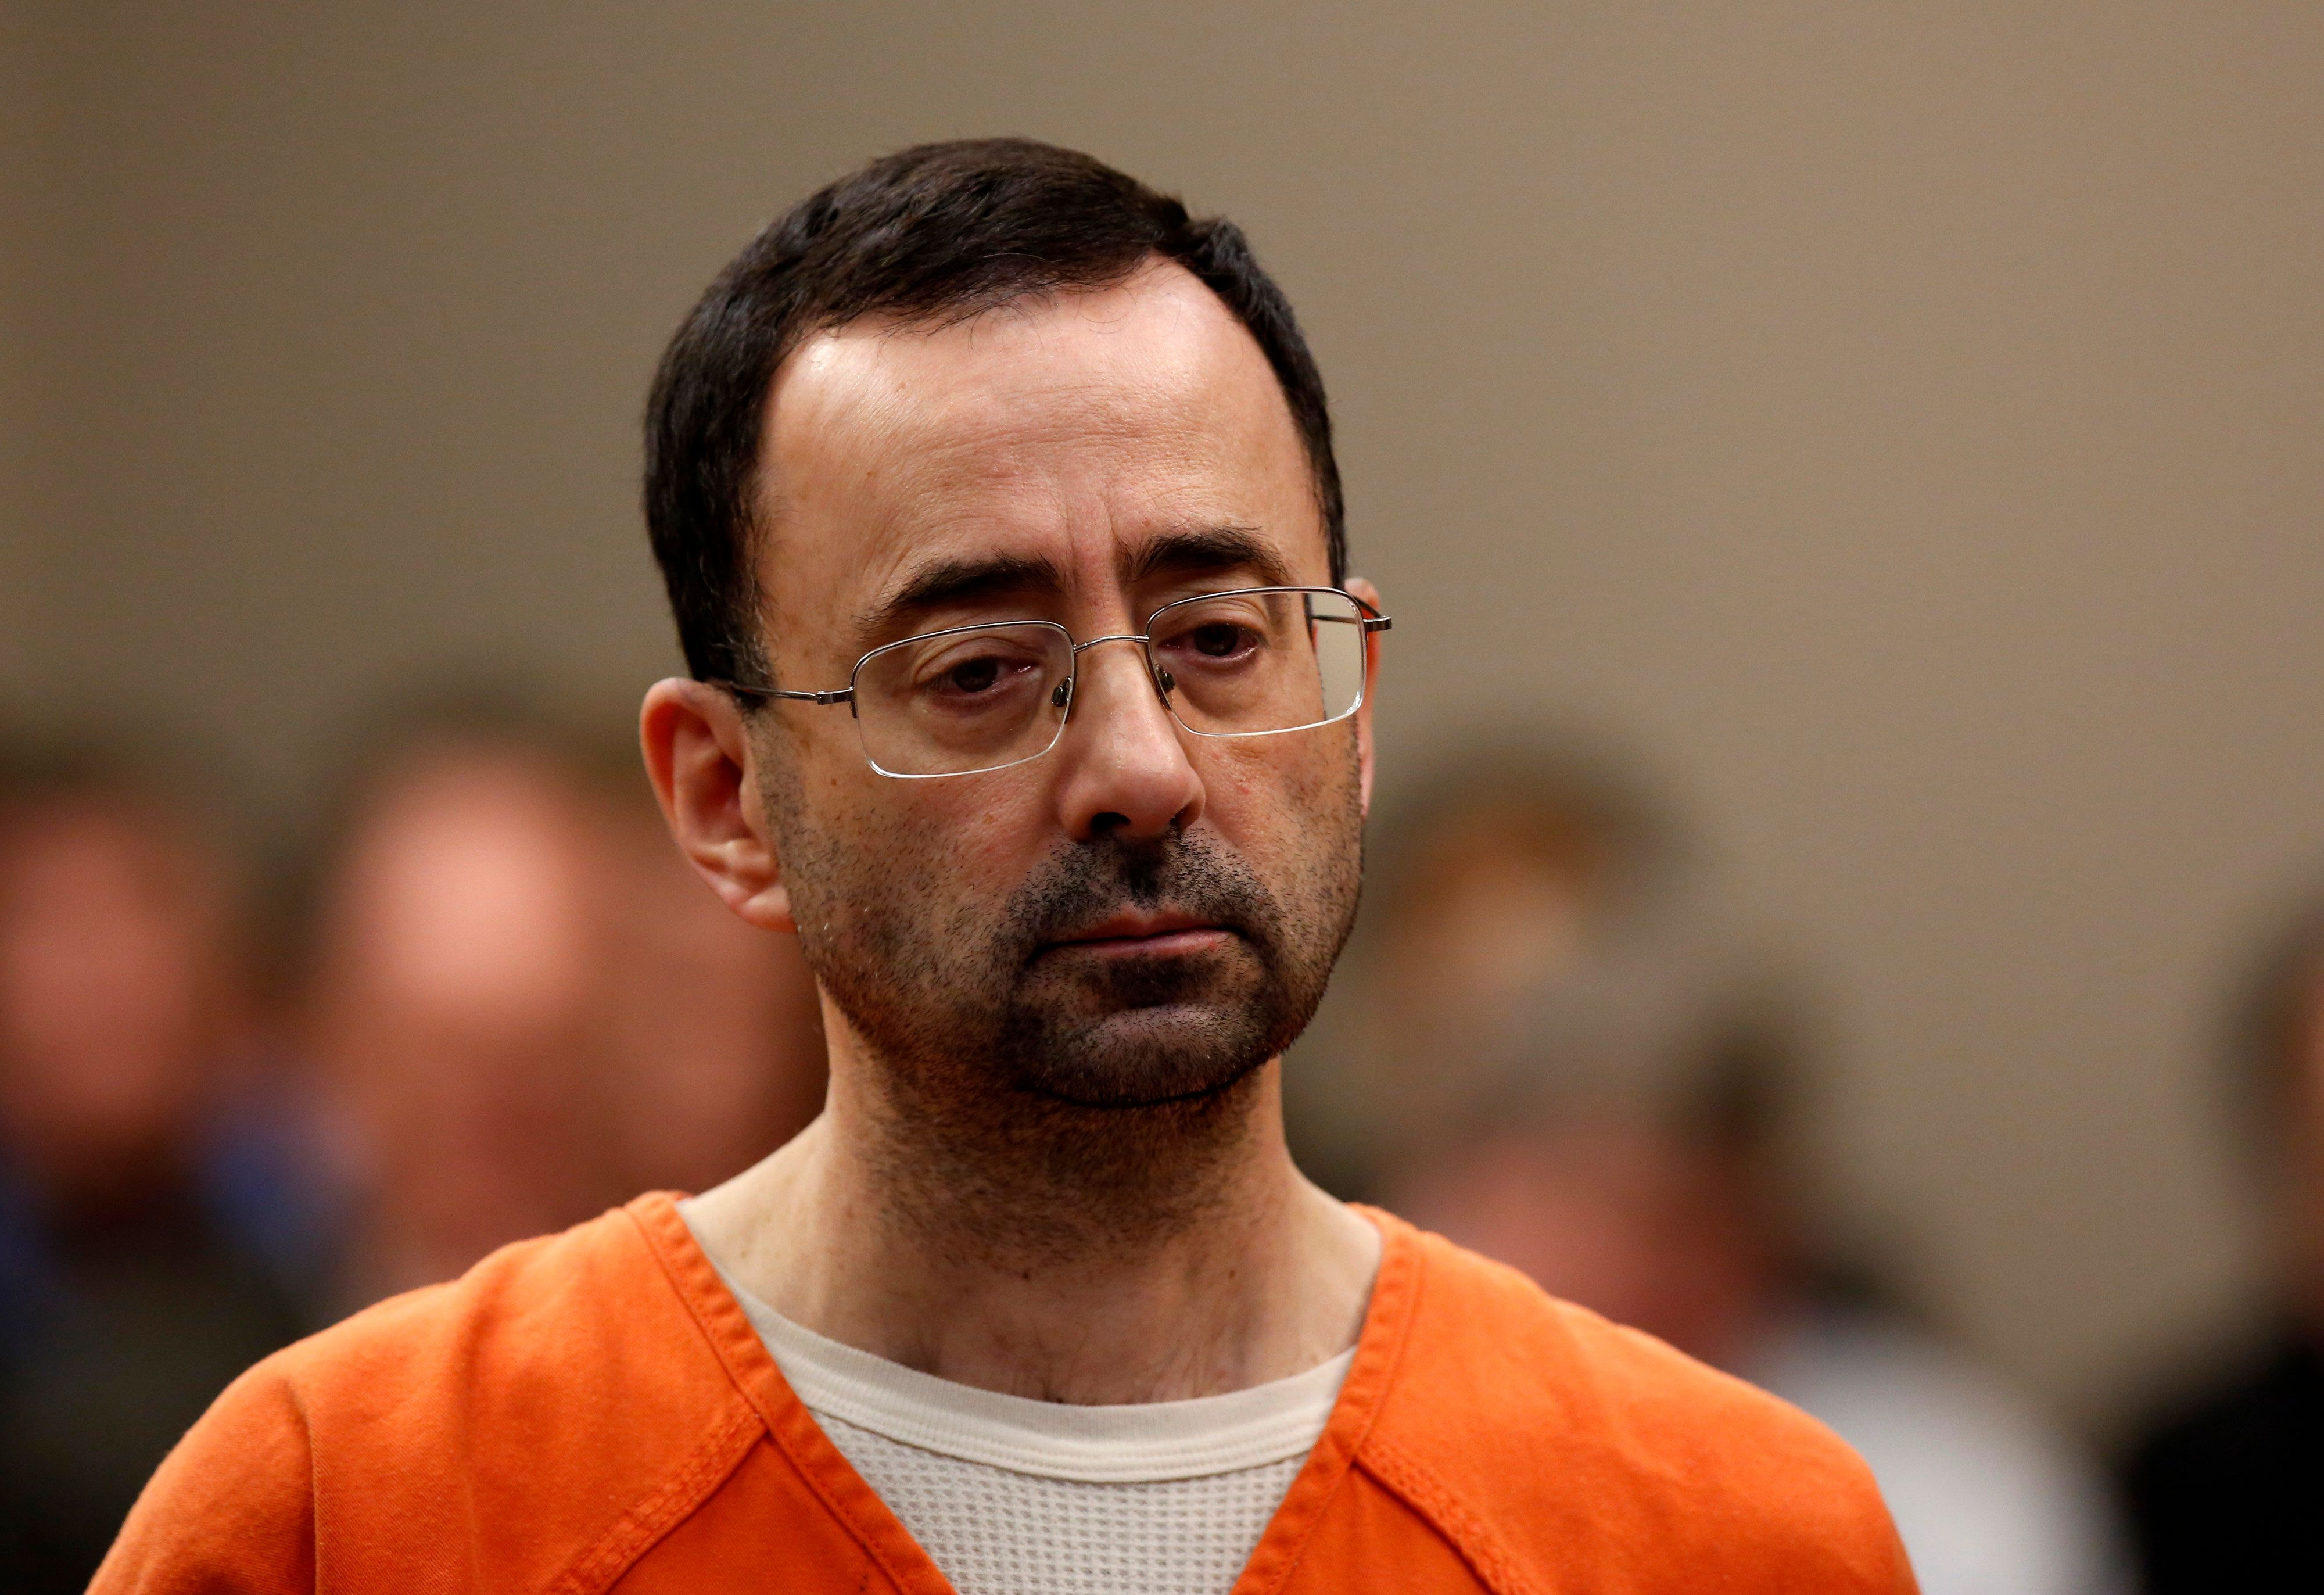 Nassar assaulted patients after MSU Title IX clearance, during MSUPD criminal investigation